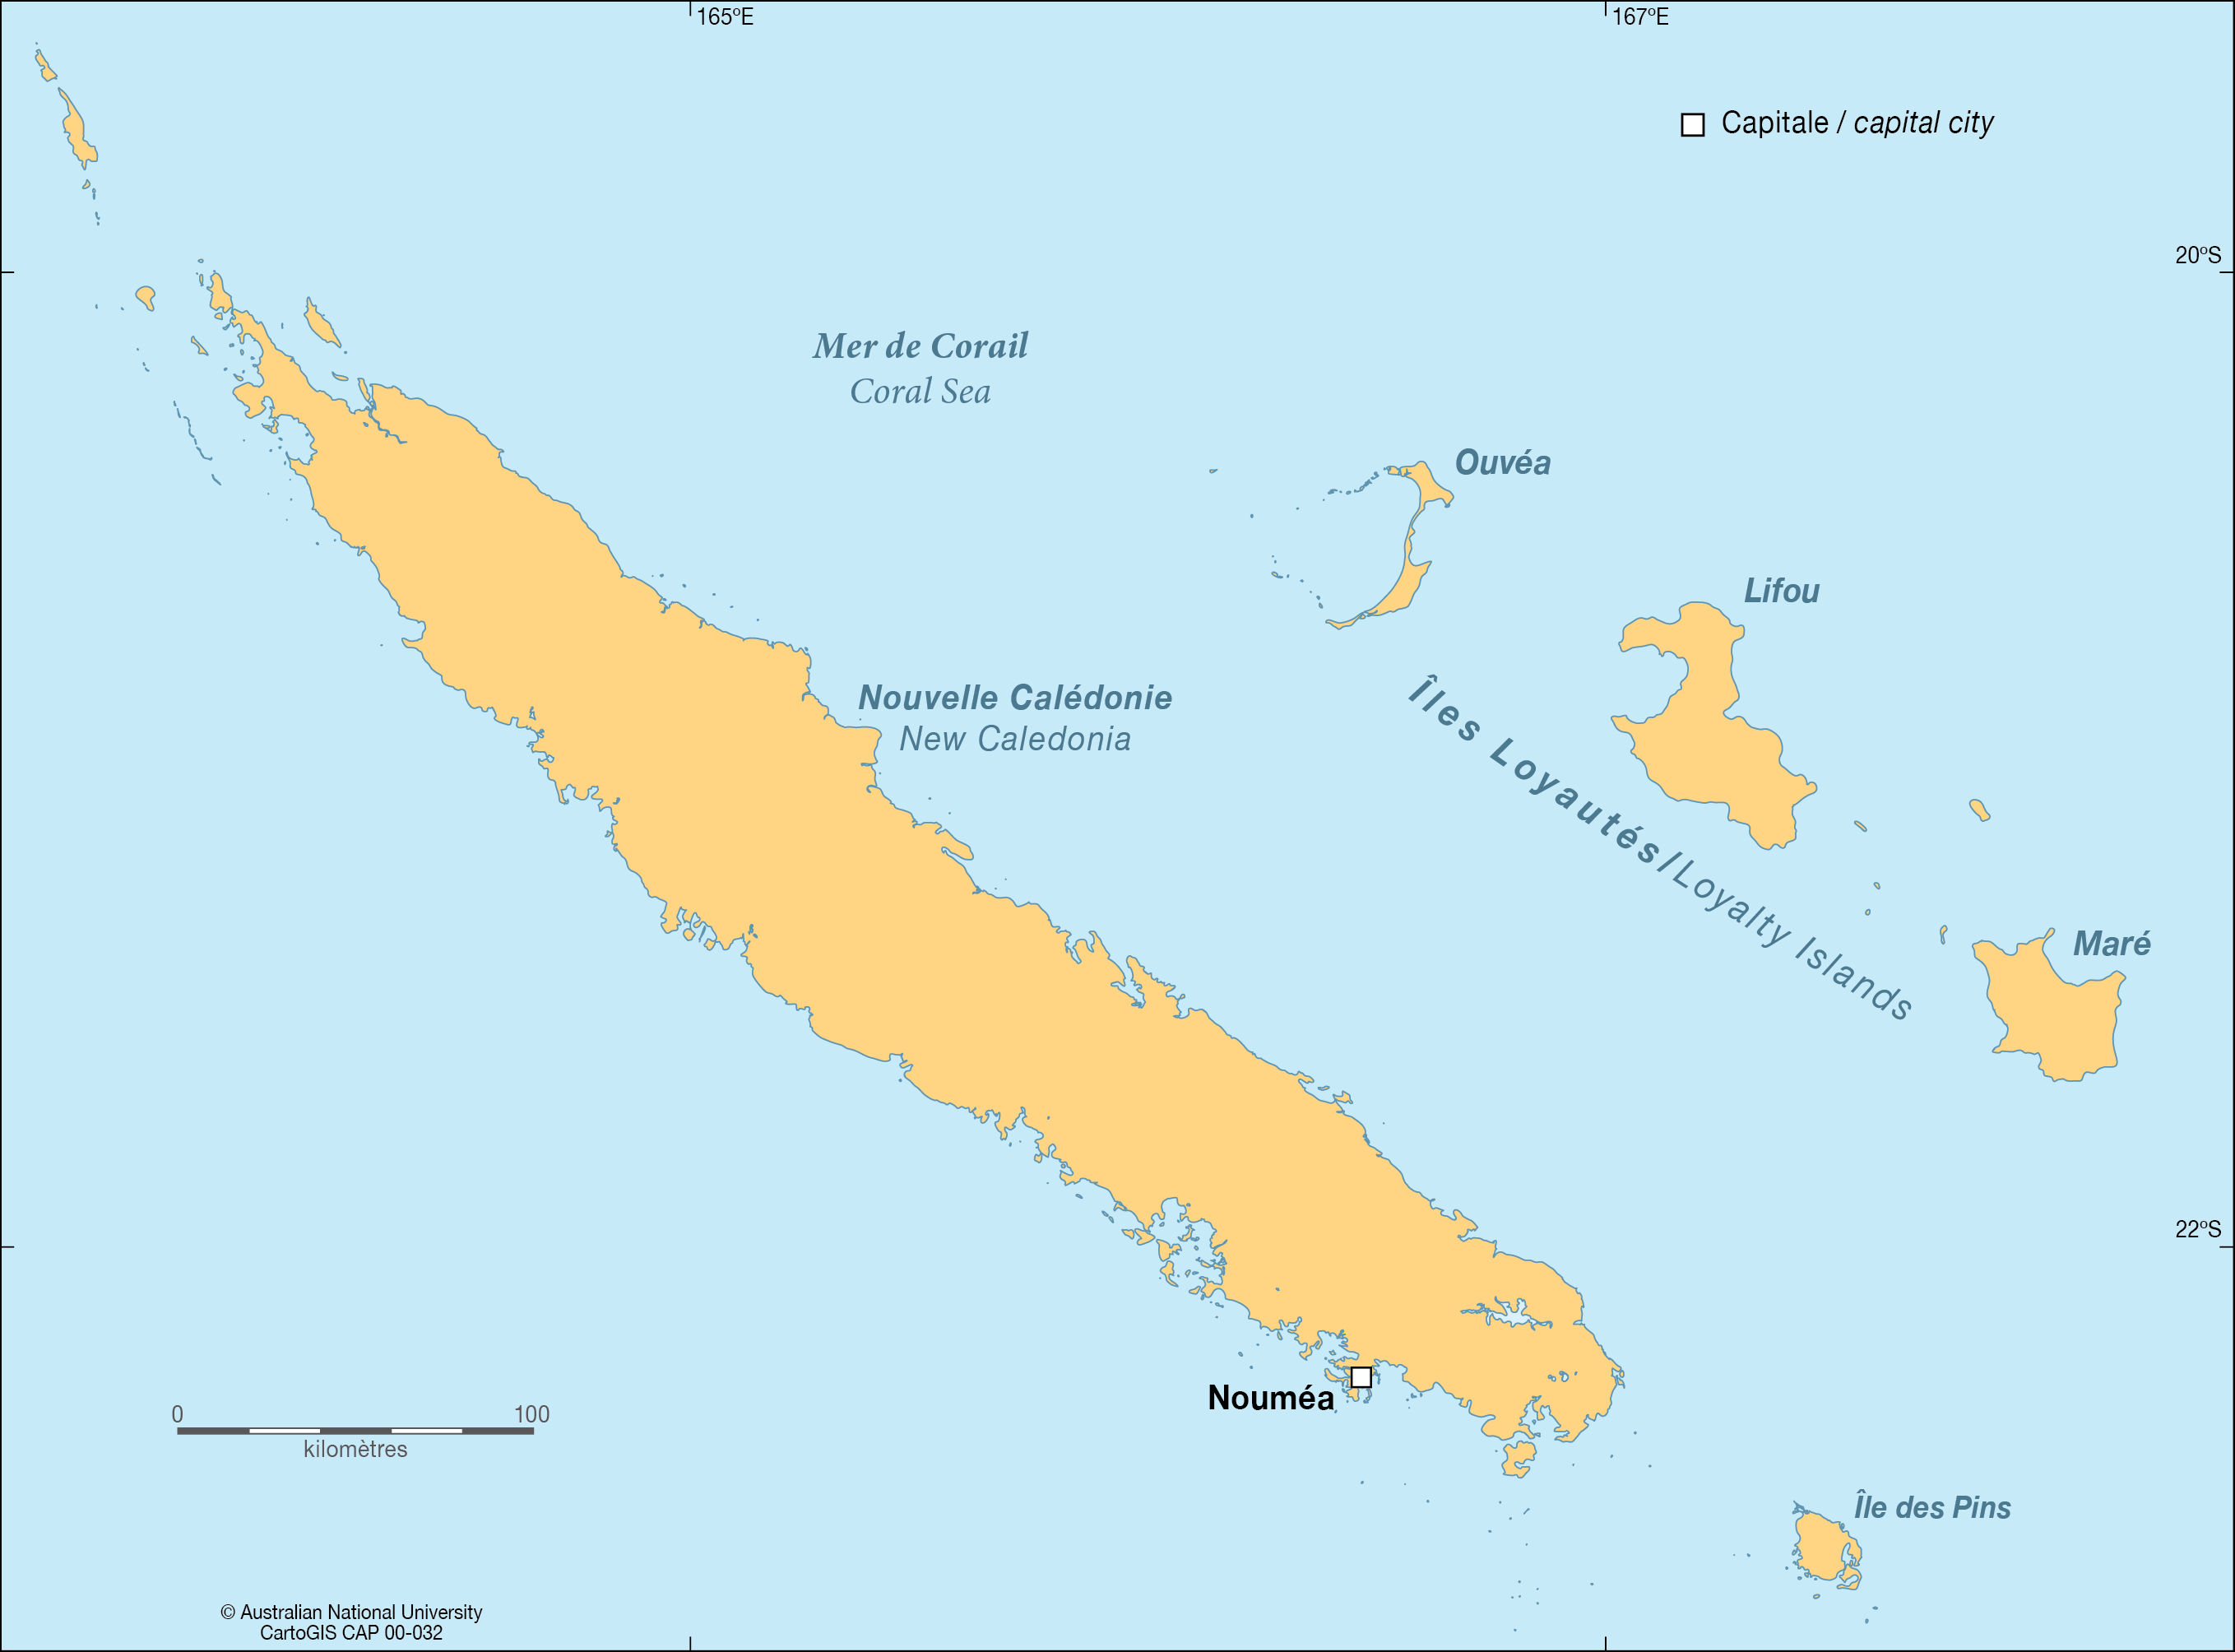 Map Of New Caledonia New Caledonia   CartoGIS Services Maps Online   ANU Map Of New Caledonia